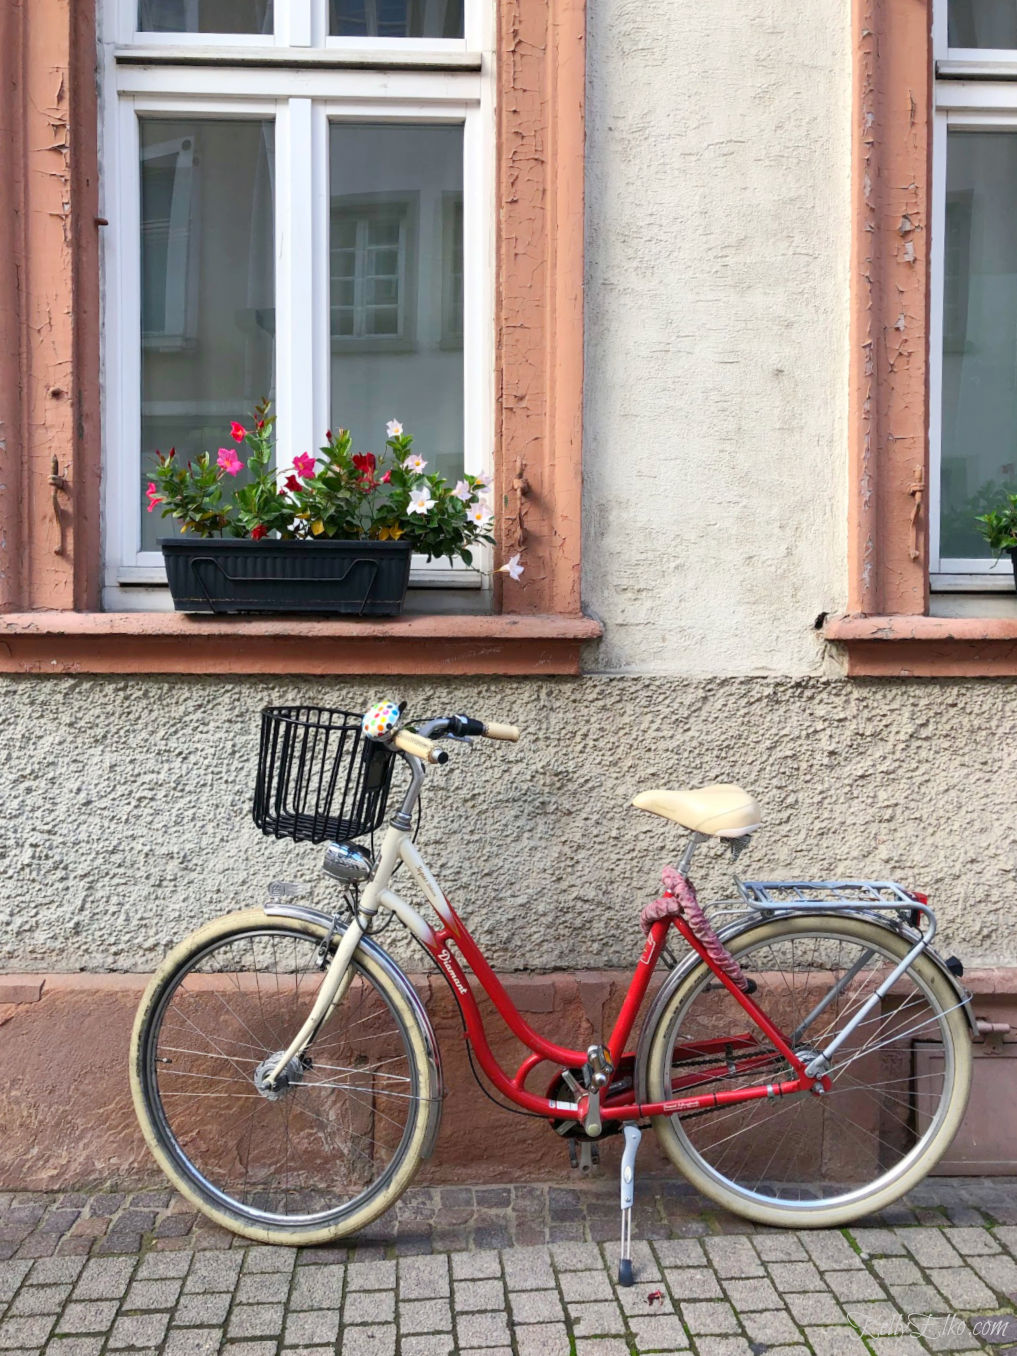 A red bike and a window box of flowers in Europe #travel #bike #travelphotography #germany